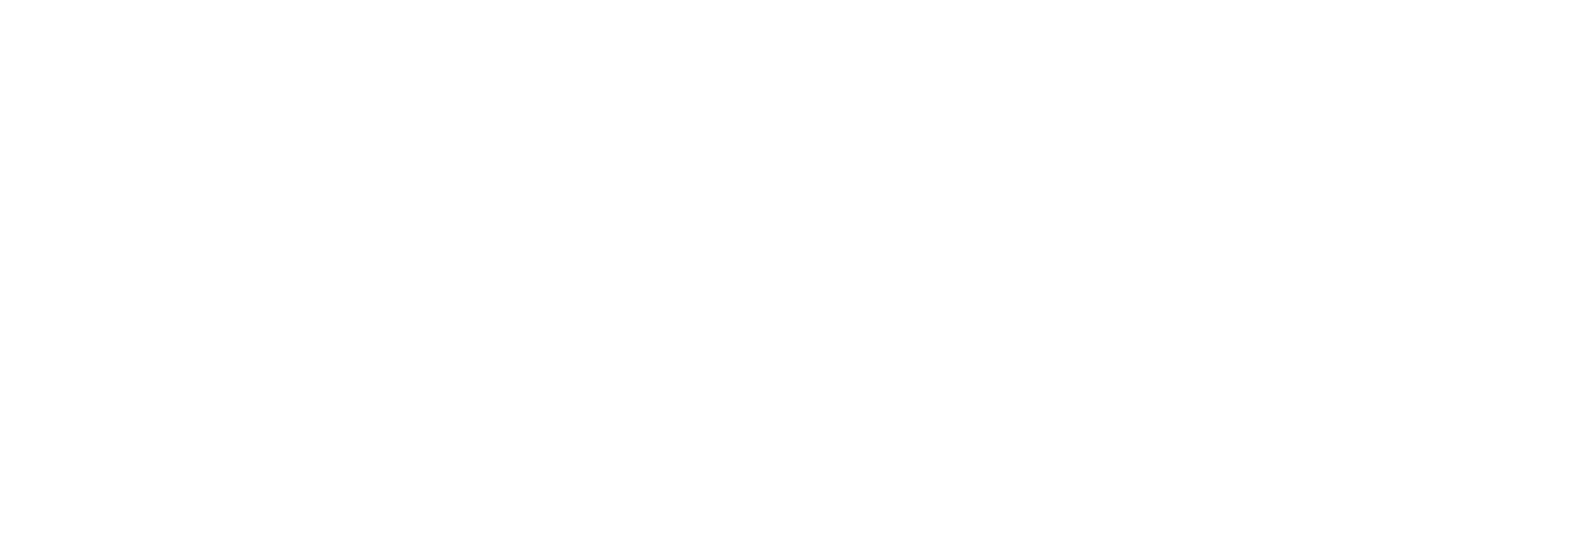 Microsoft Select Partner